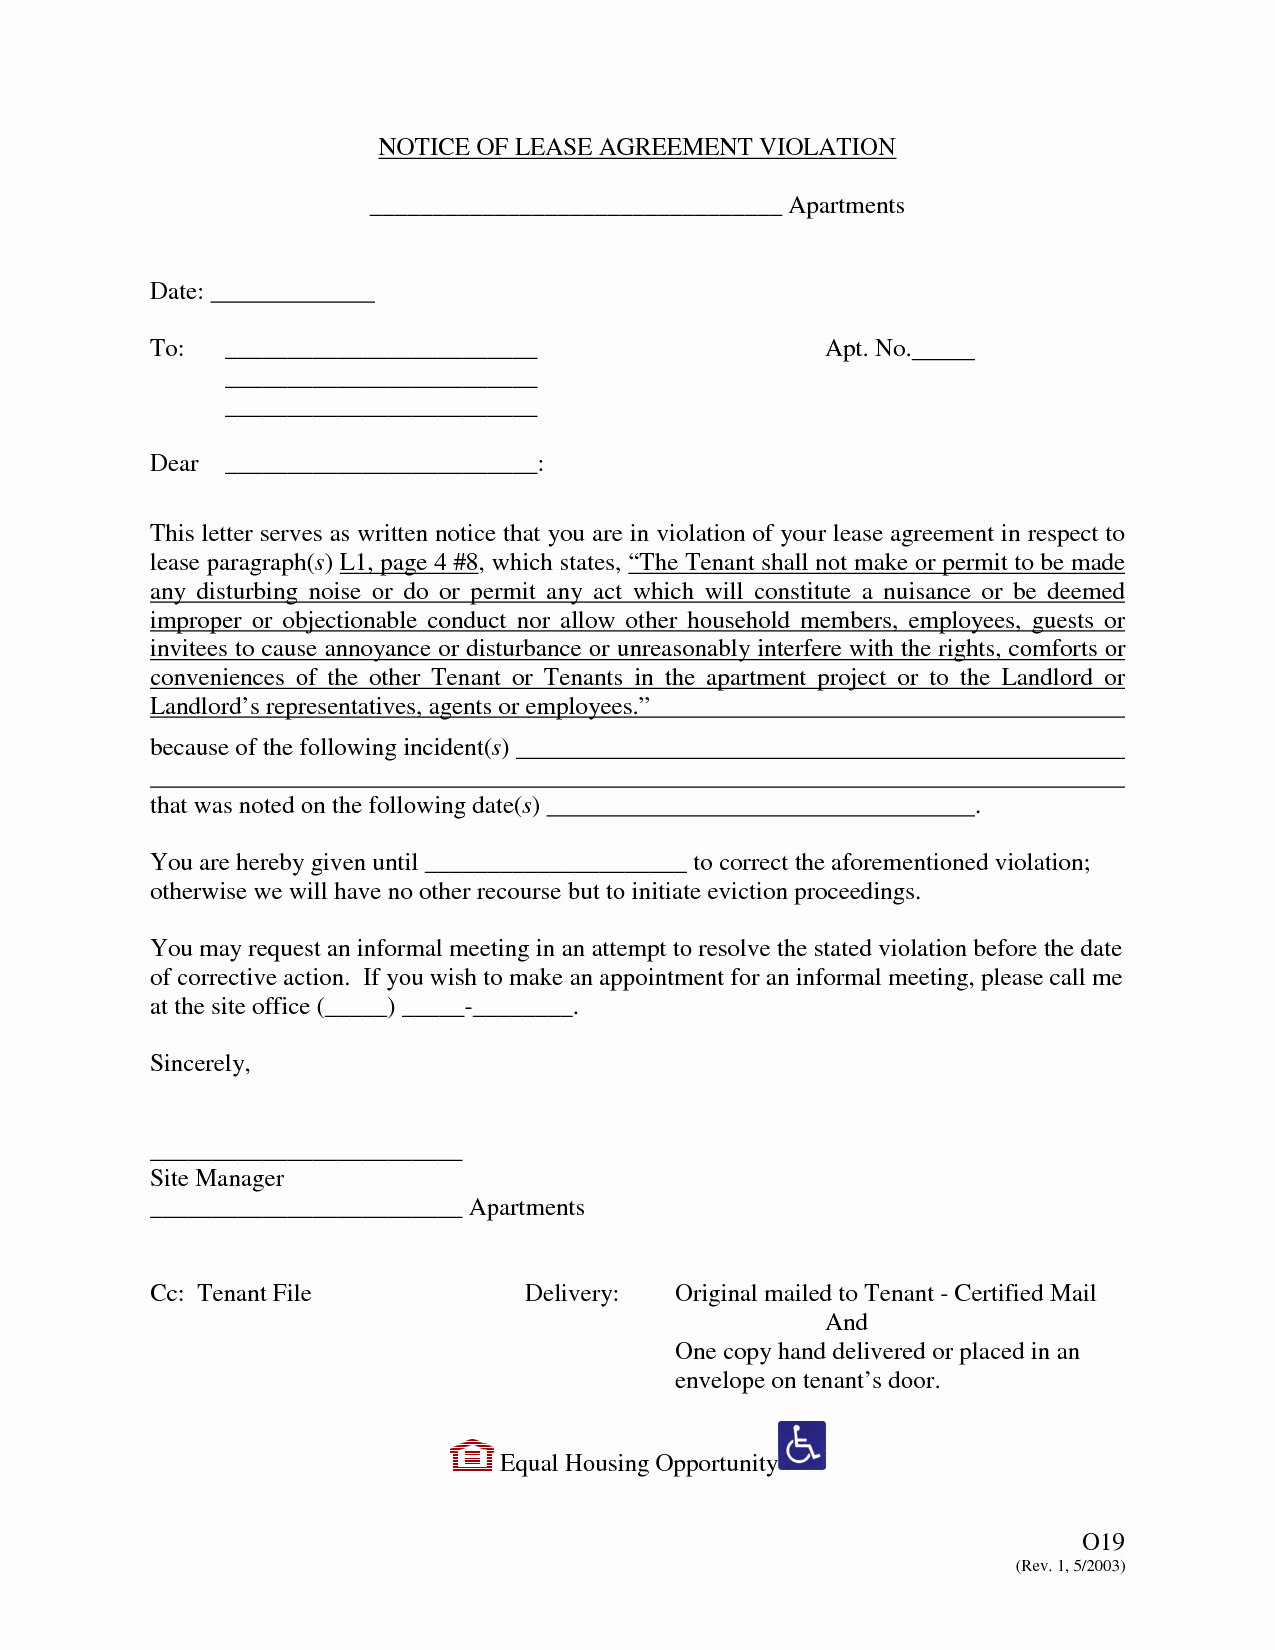 Notice Of Lease Violation Template Beautiful Best S Of Notice Violation Letter Template for